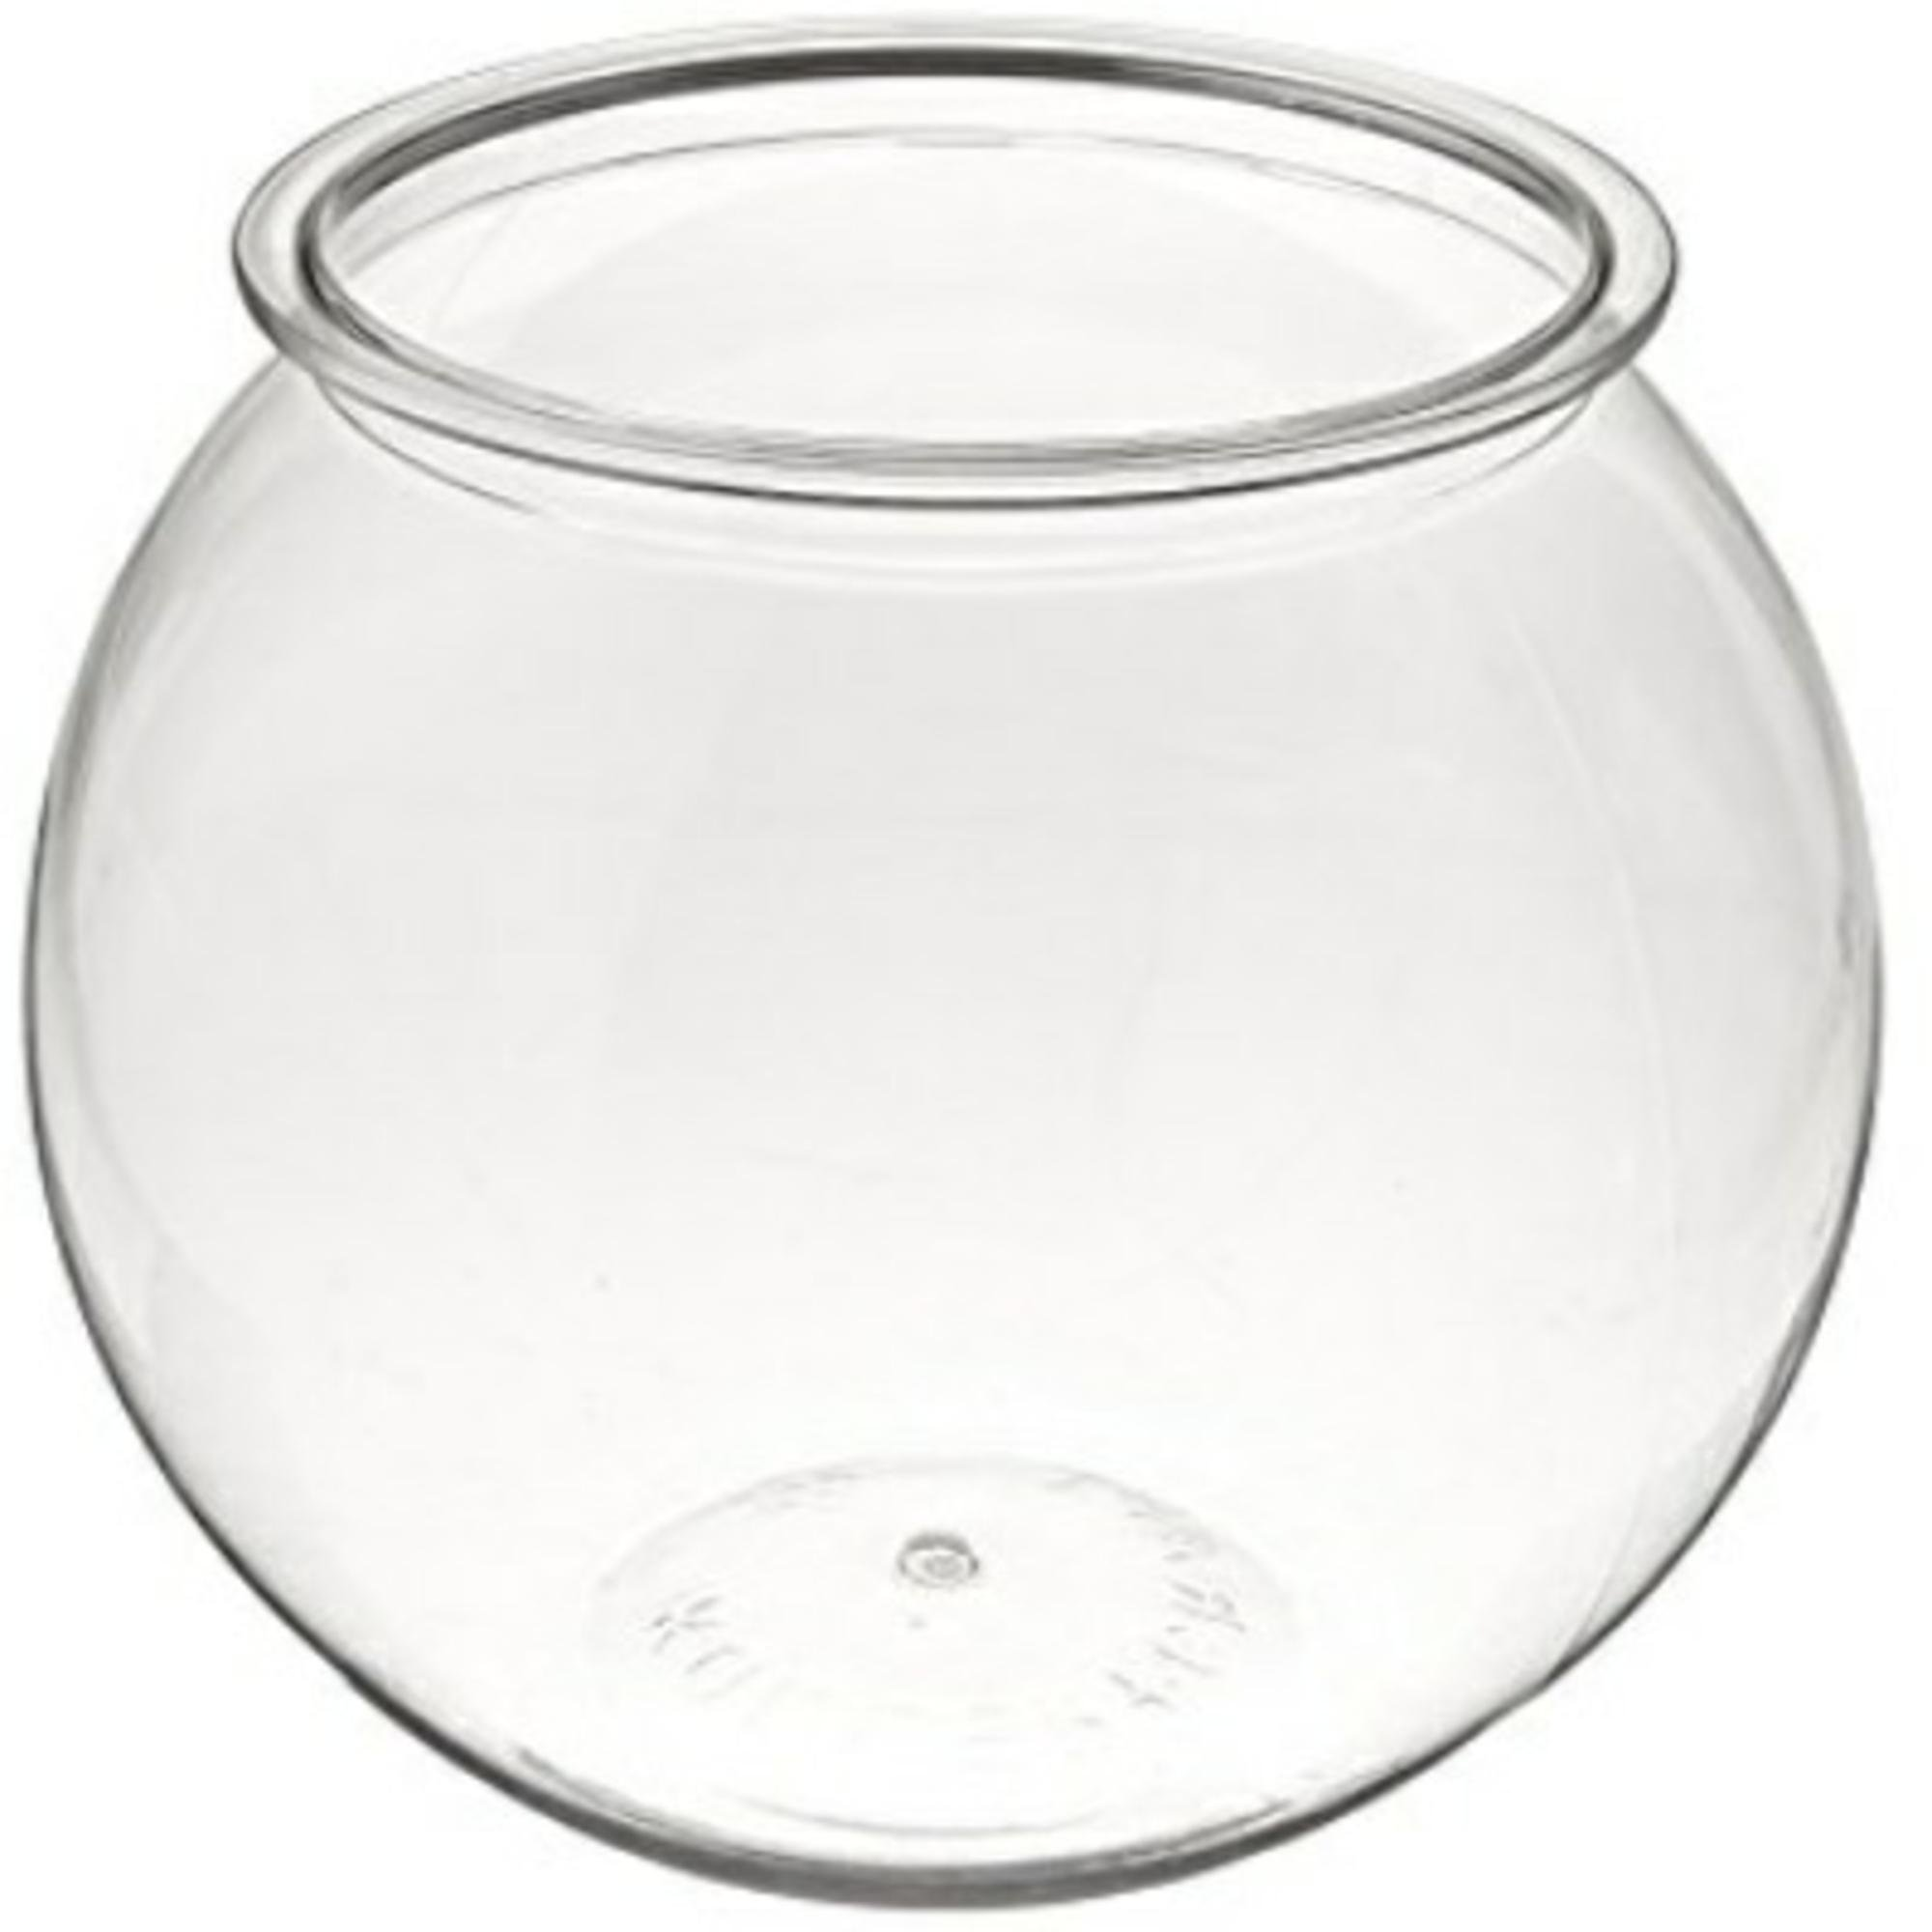 Koller Products 2-Gallon Fish Bowl - BL20RPET by Koller Products